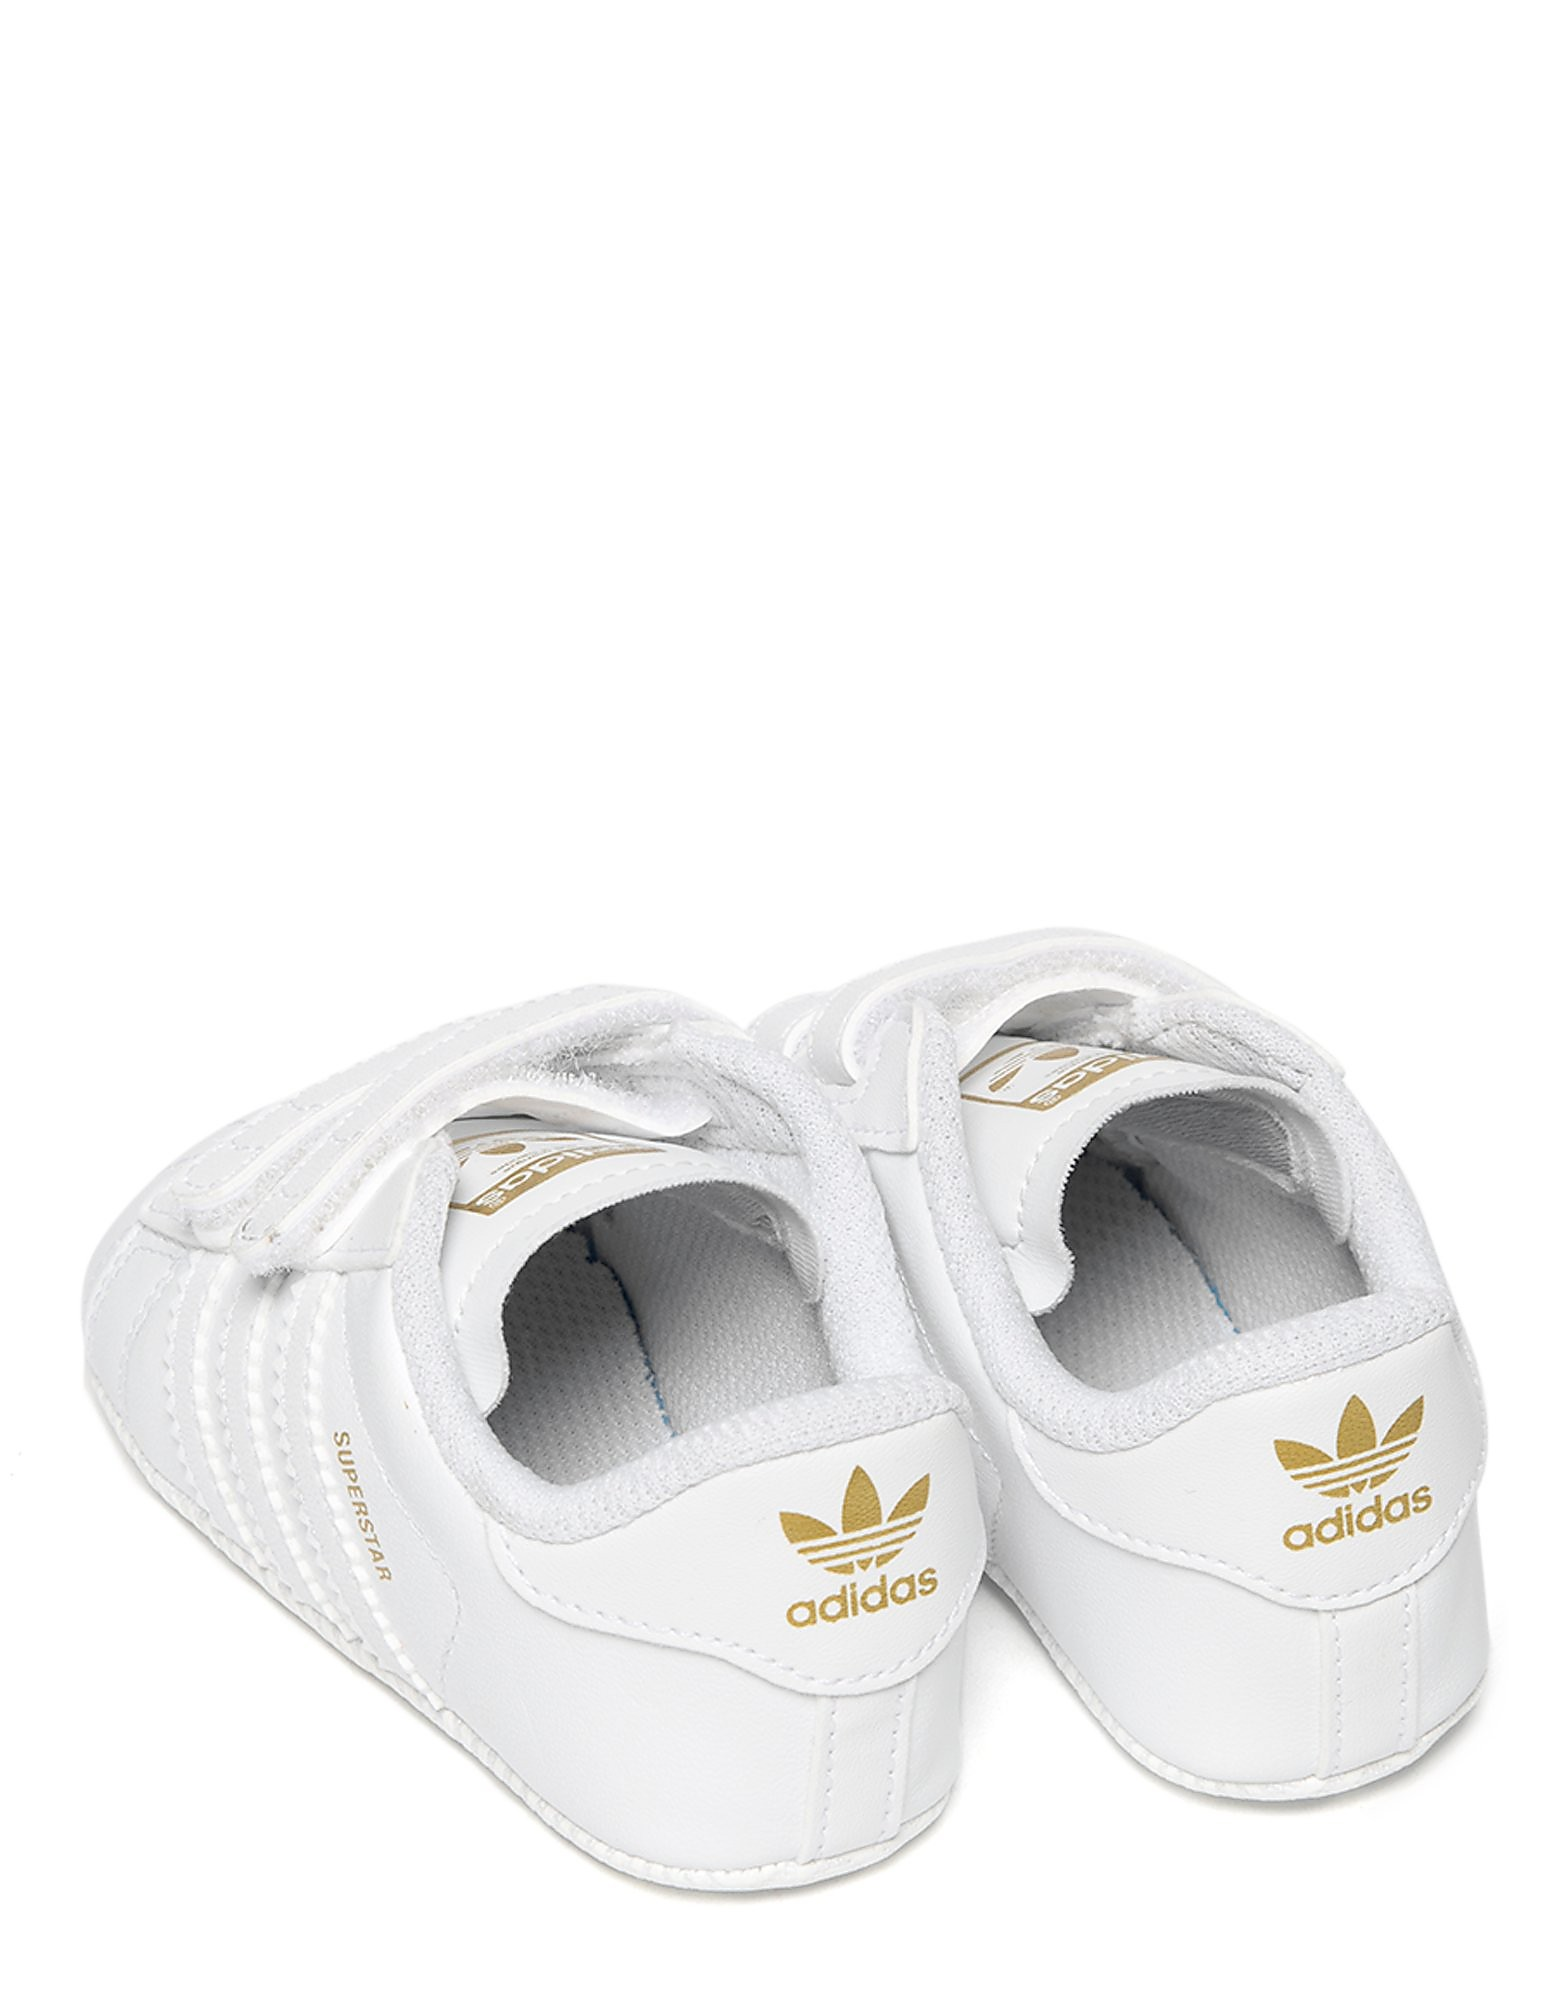 adidas Originals Superstar Crib voor baby's